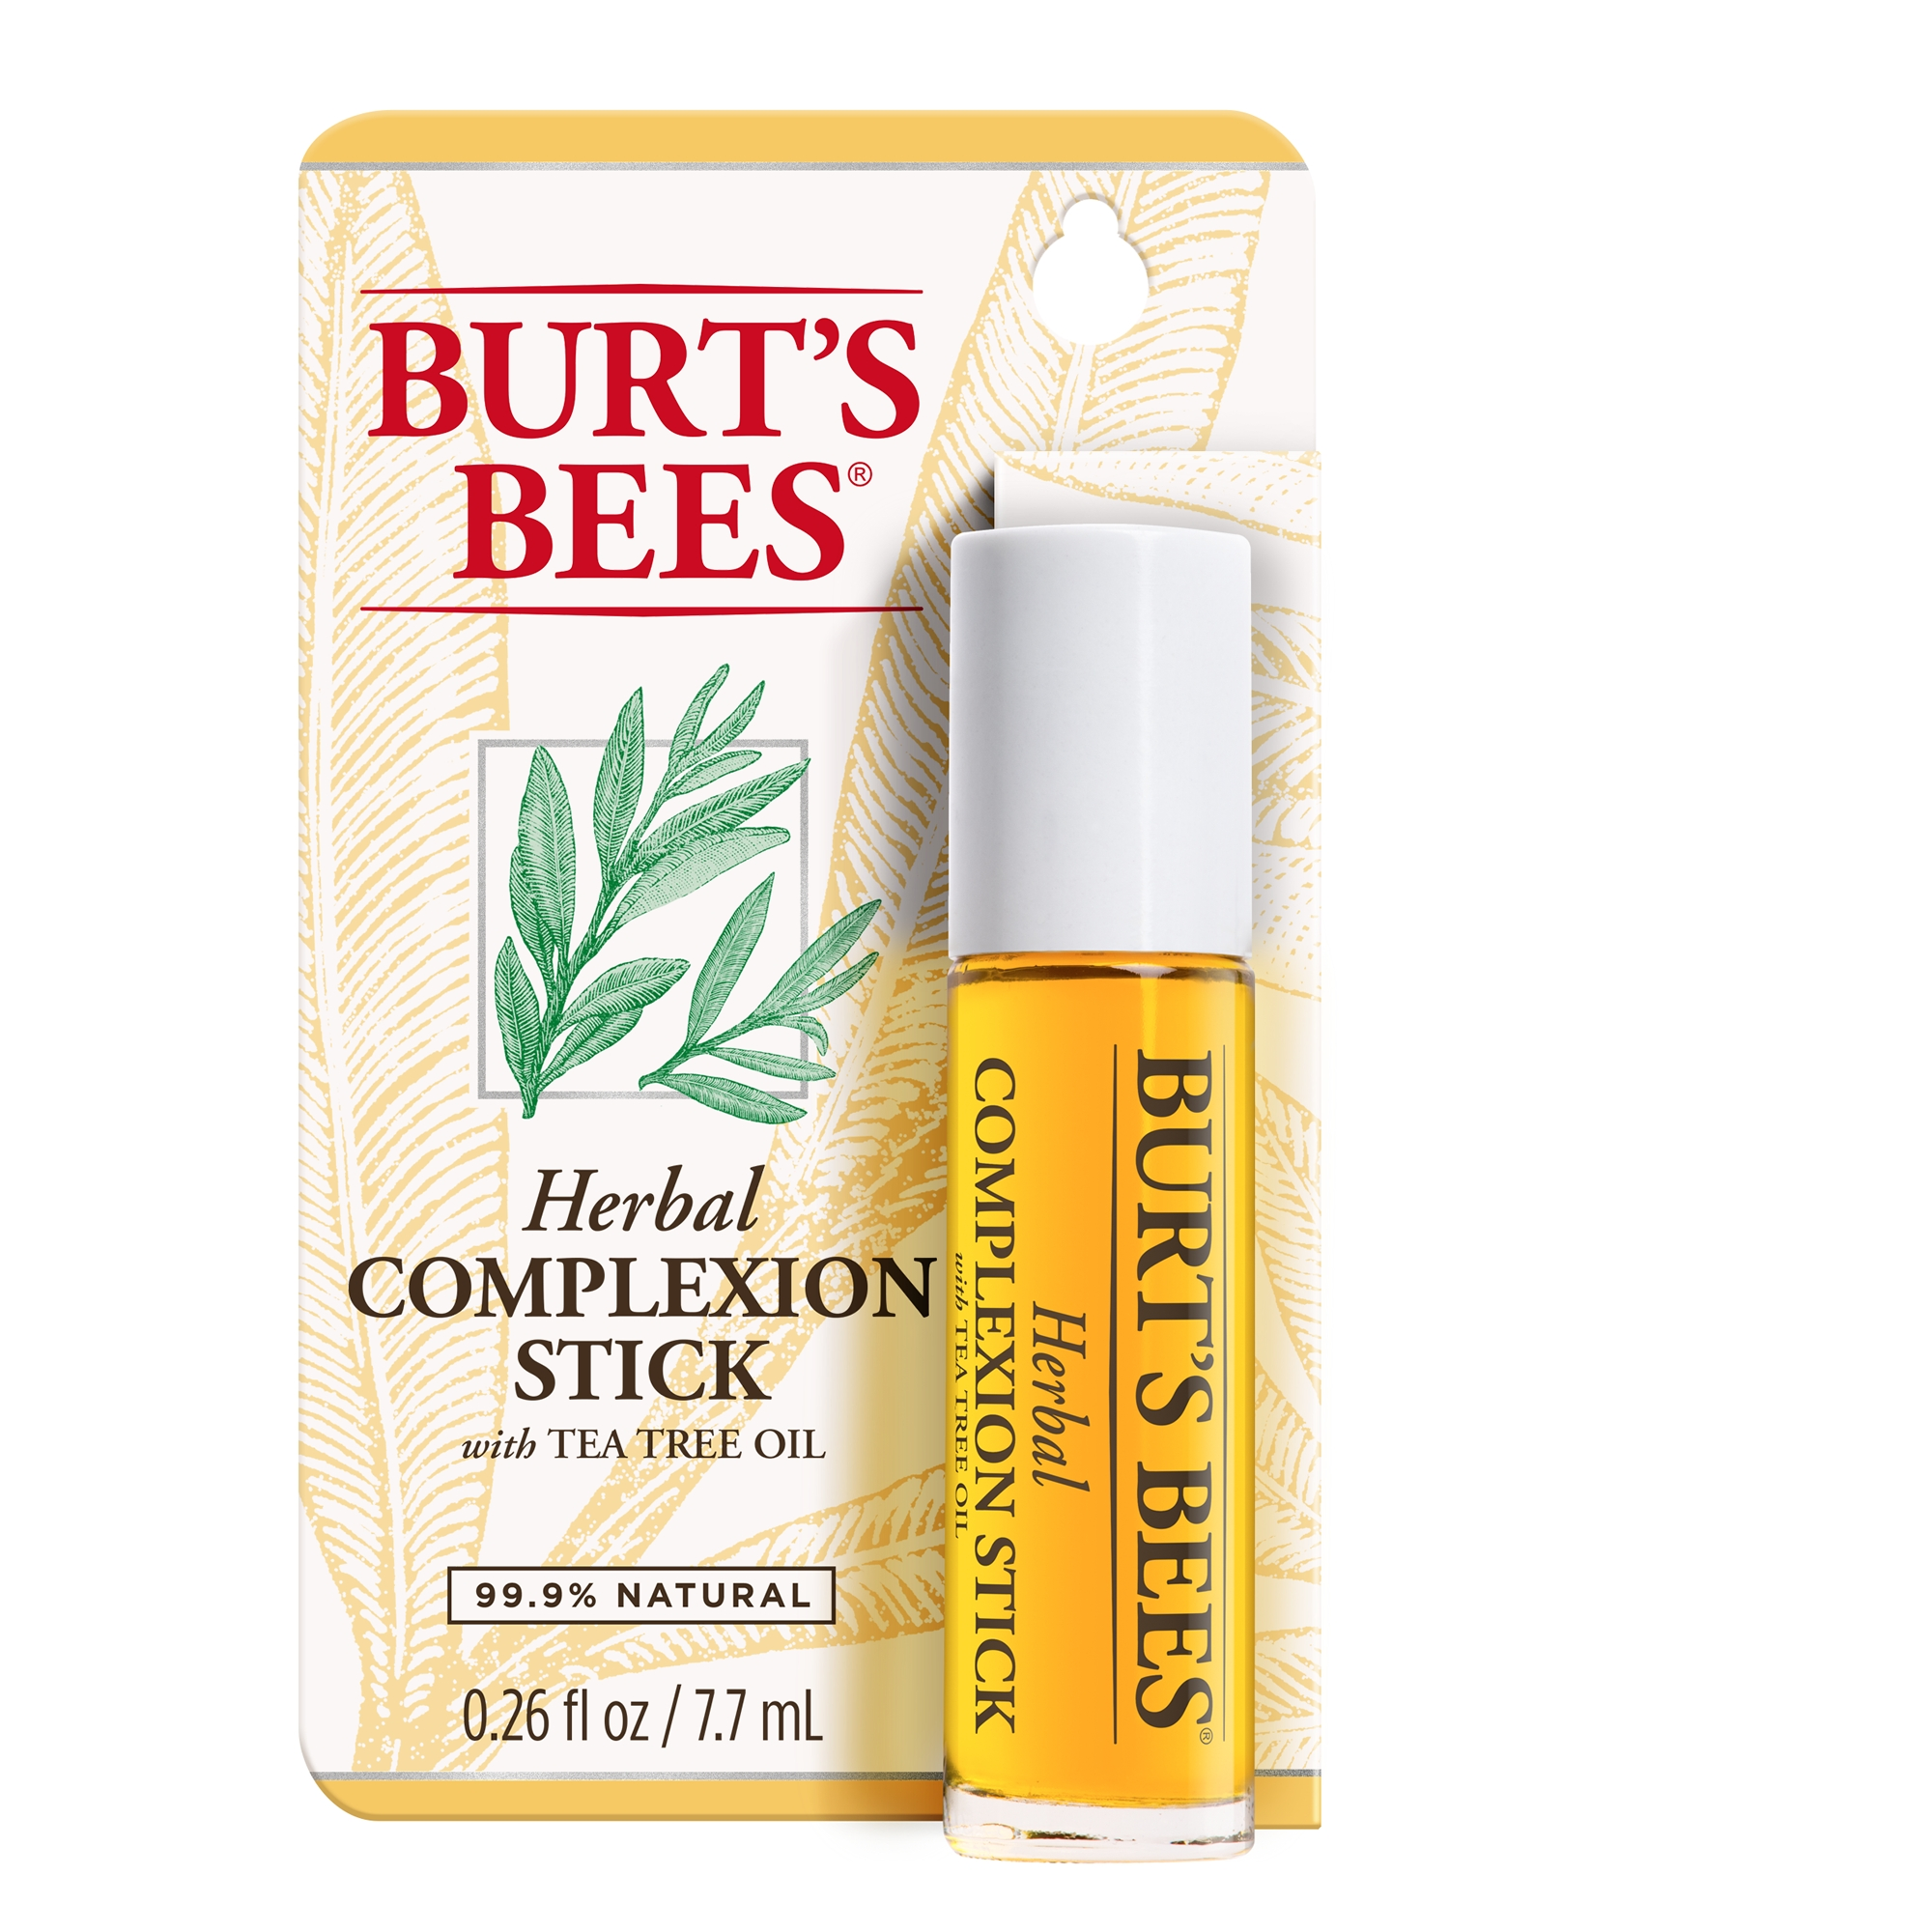 Burt's Bees Herbal Complexion Stick, 1 Stick